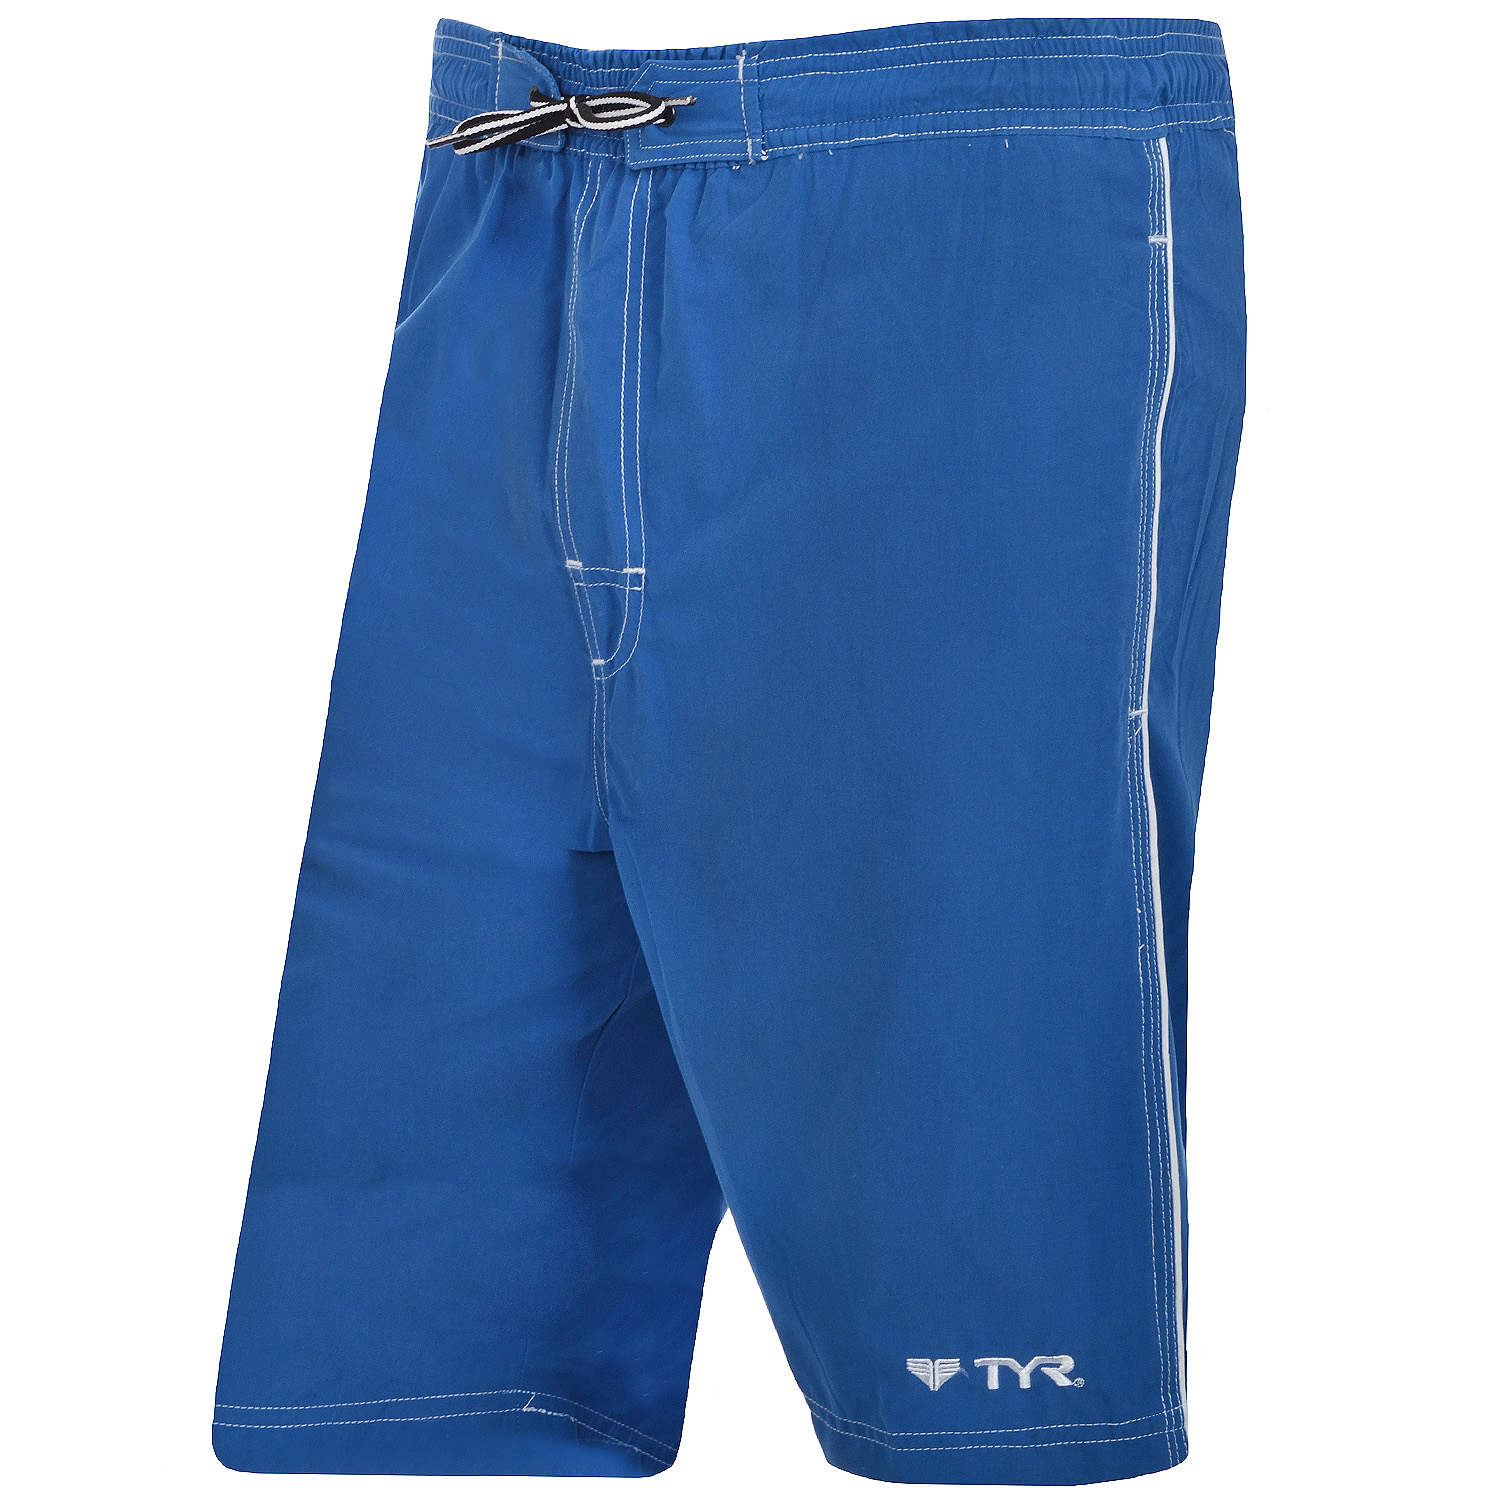 TYR-Mens-Knee-Length-Mesh-Lined-Swimming-Swim-Beach-Board-Shorts